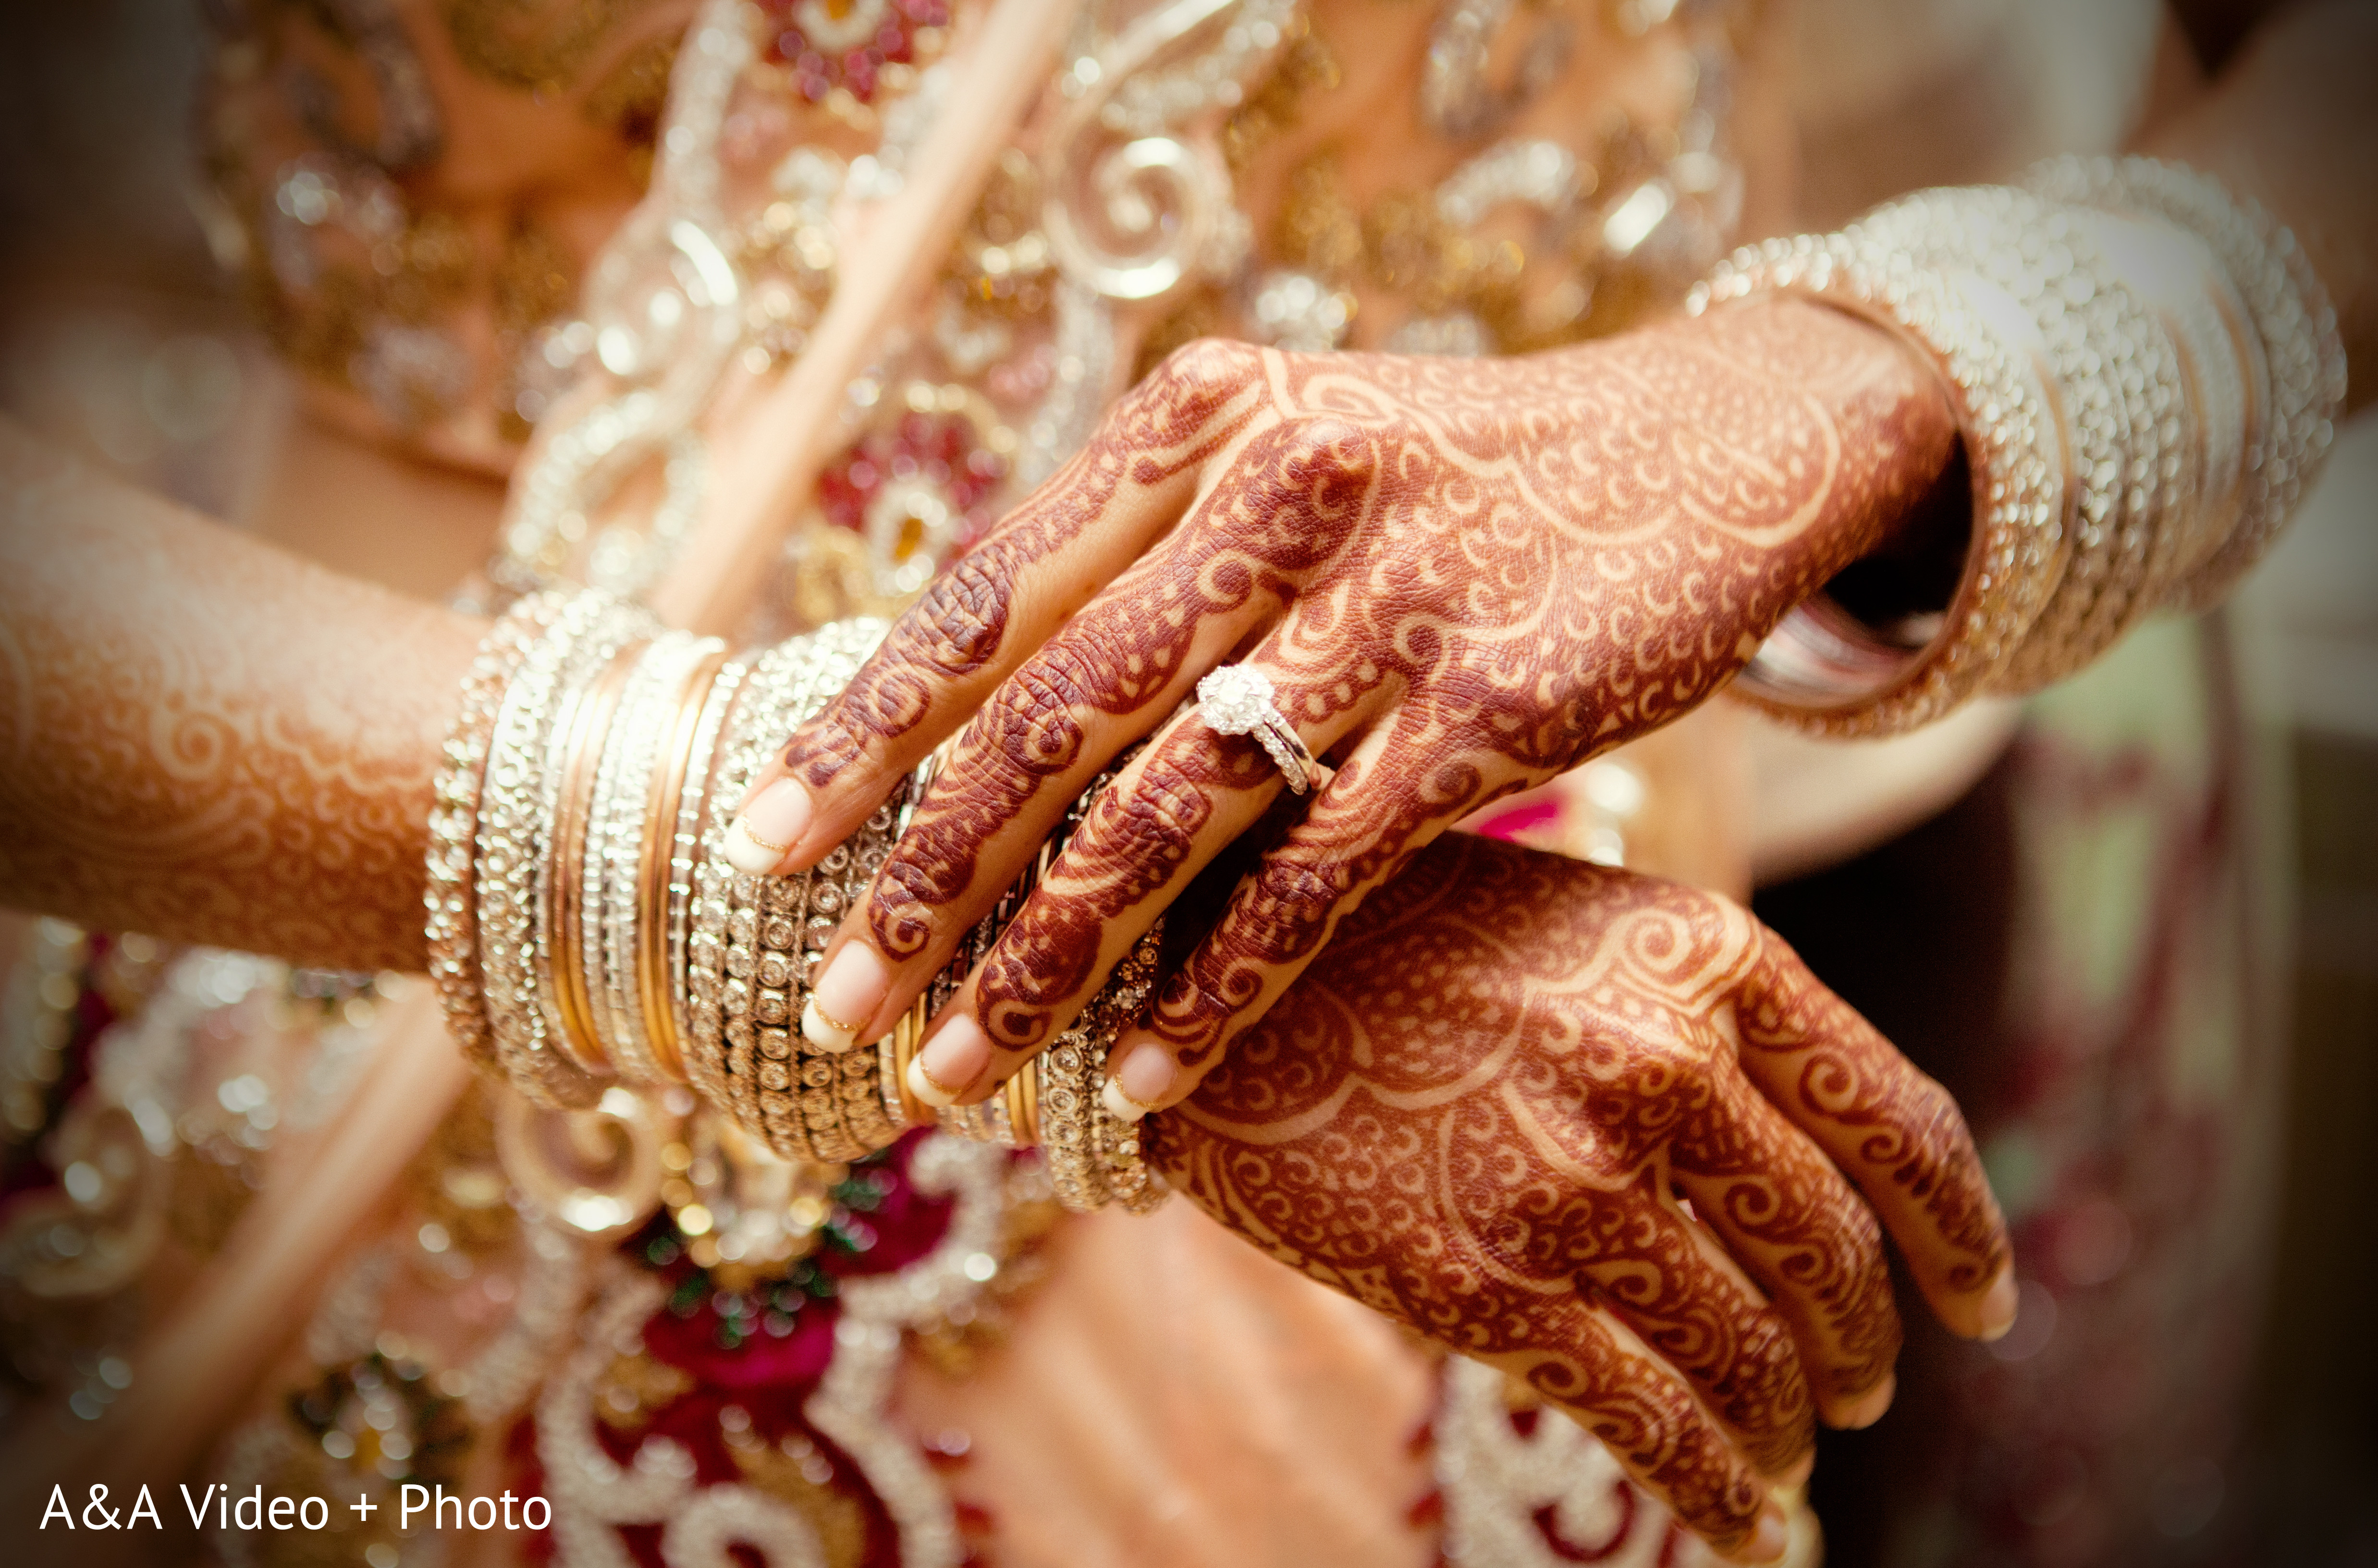 Mehndi Designs In Houston TX Indian Wedding By AampA Video Photo